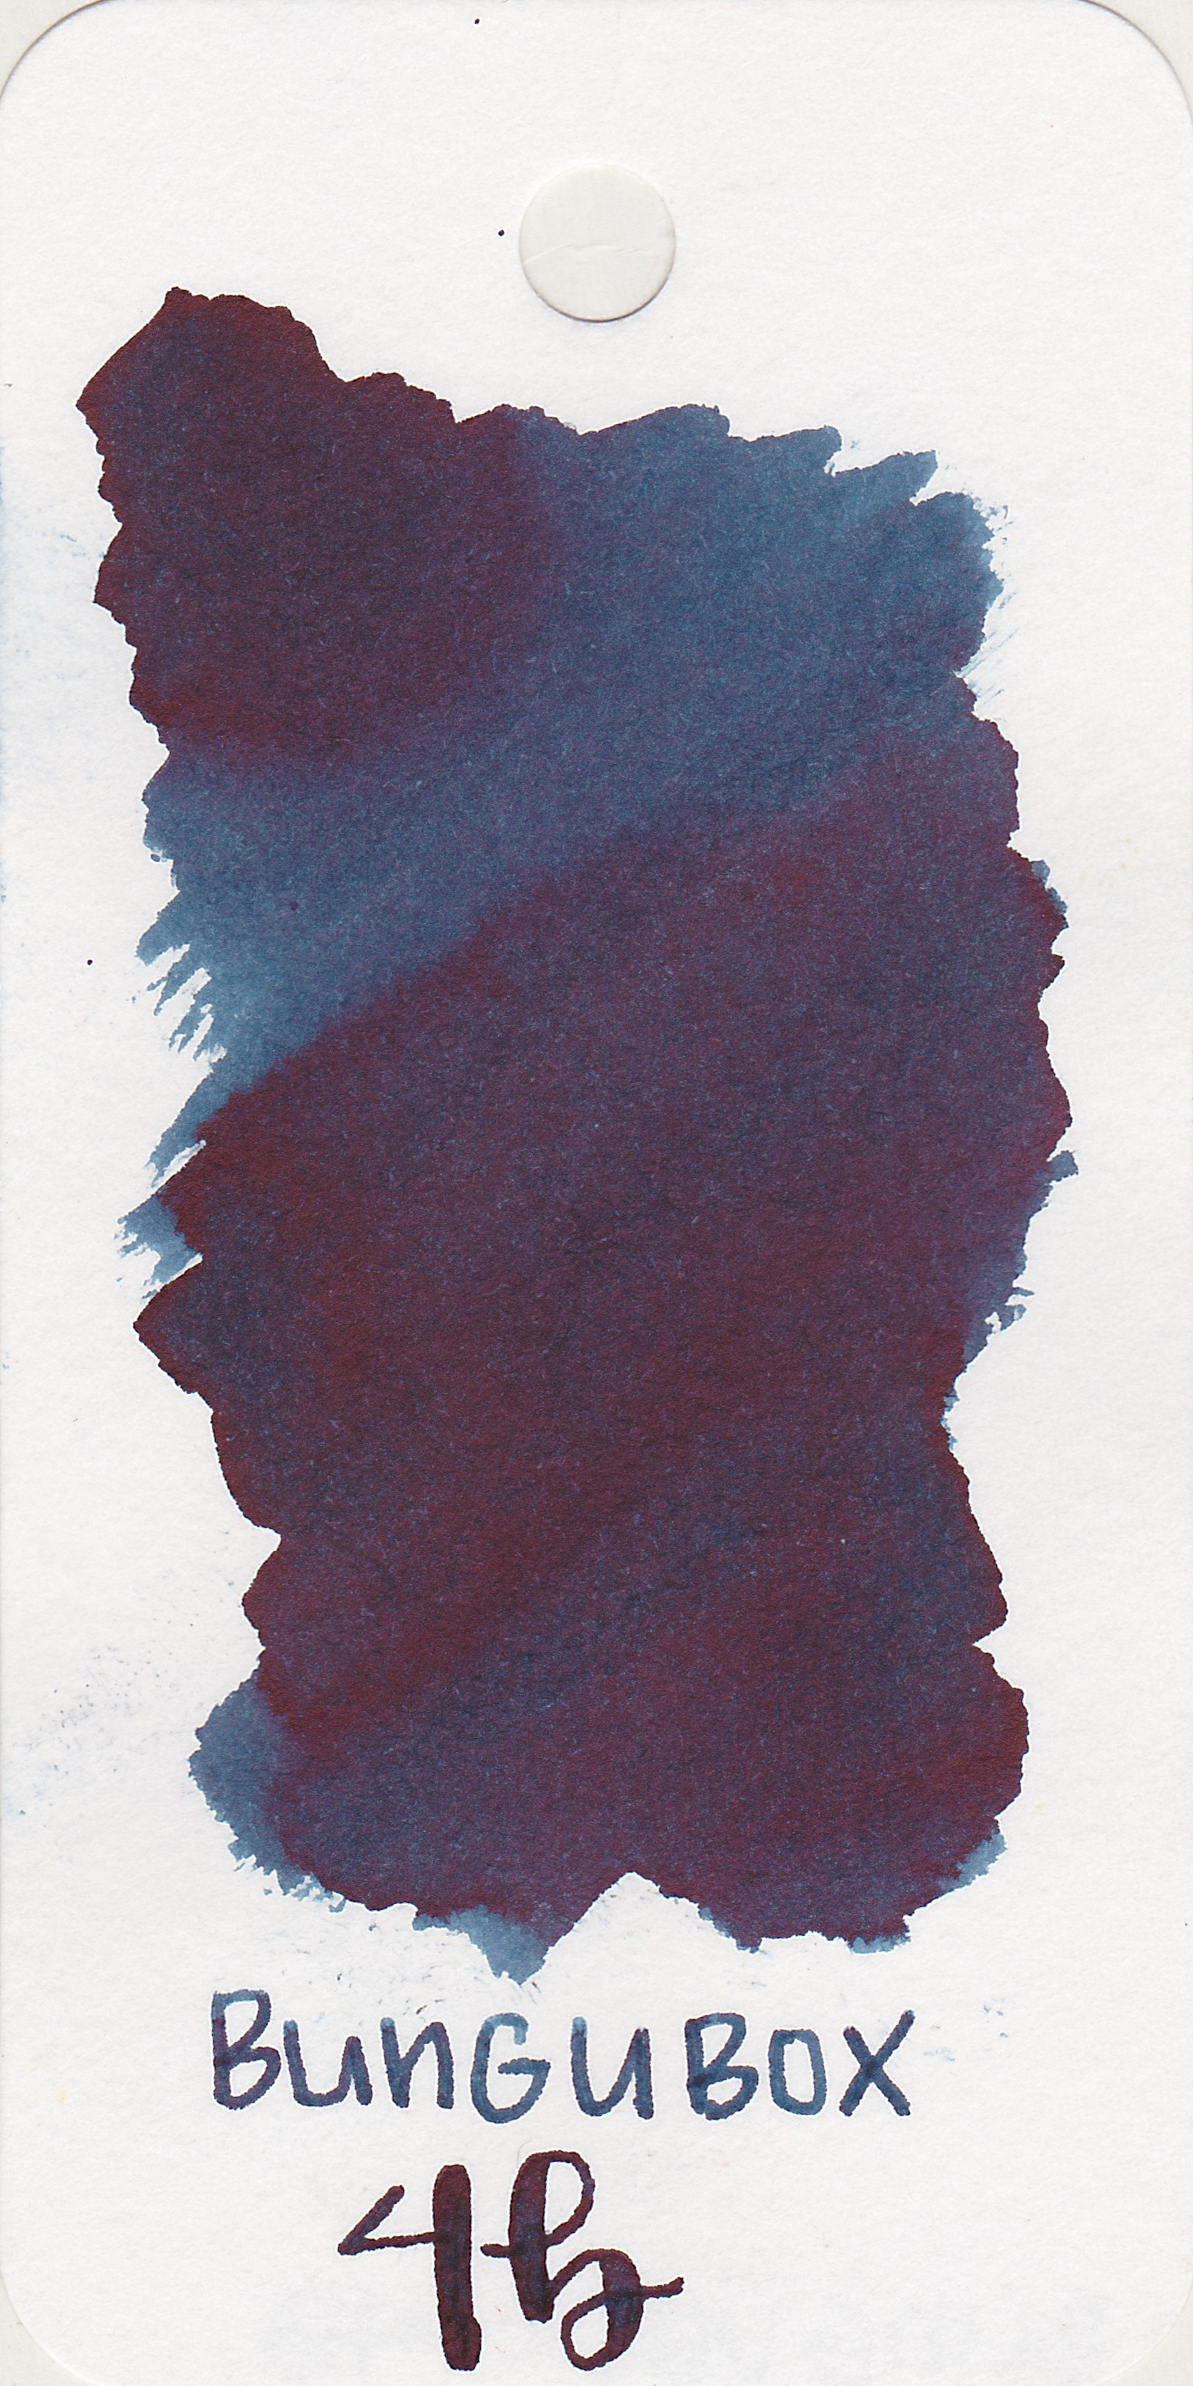 The color: - 4B is a dark blue black.